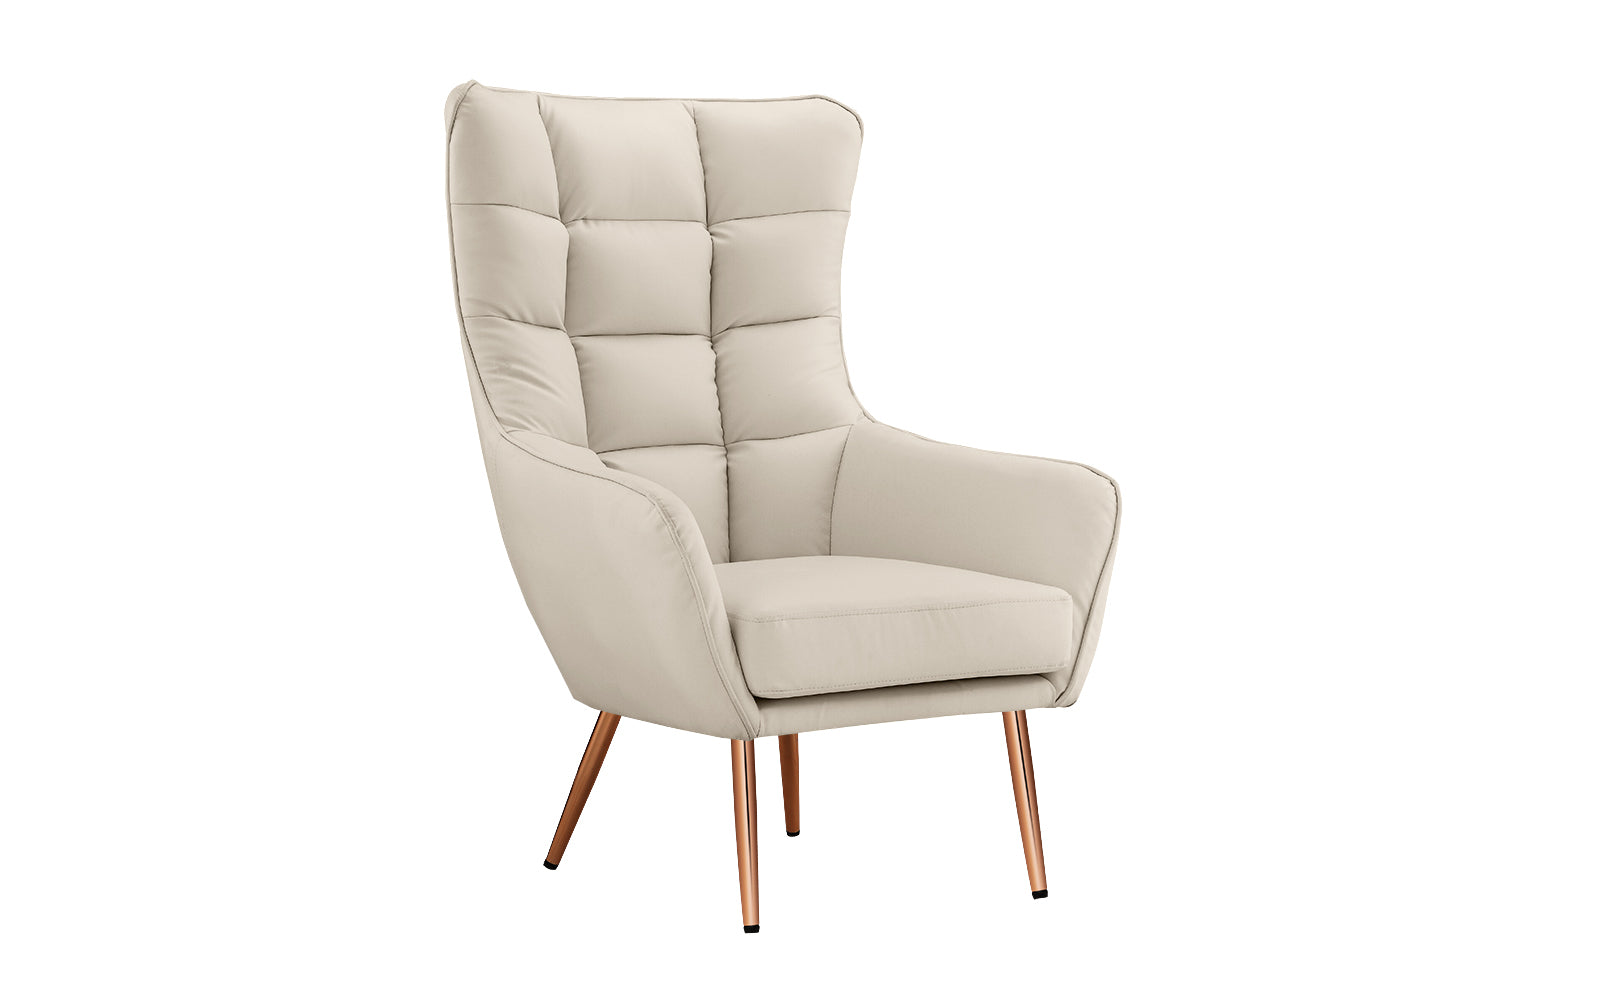 Faux Leather Shelter Armchair Image